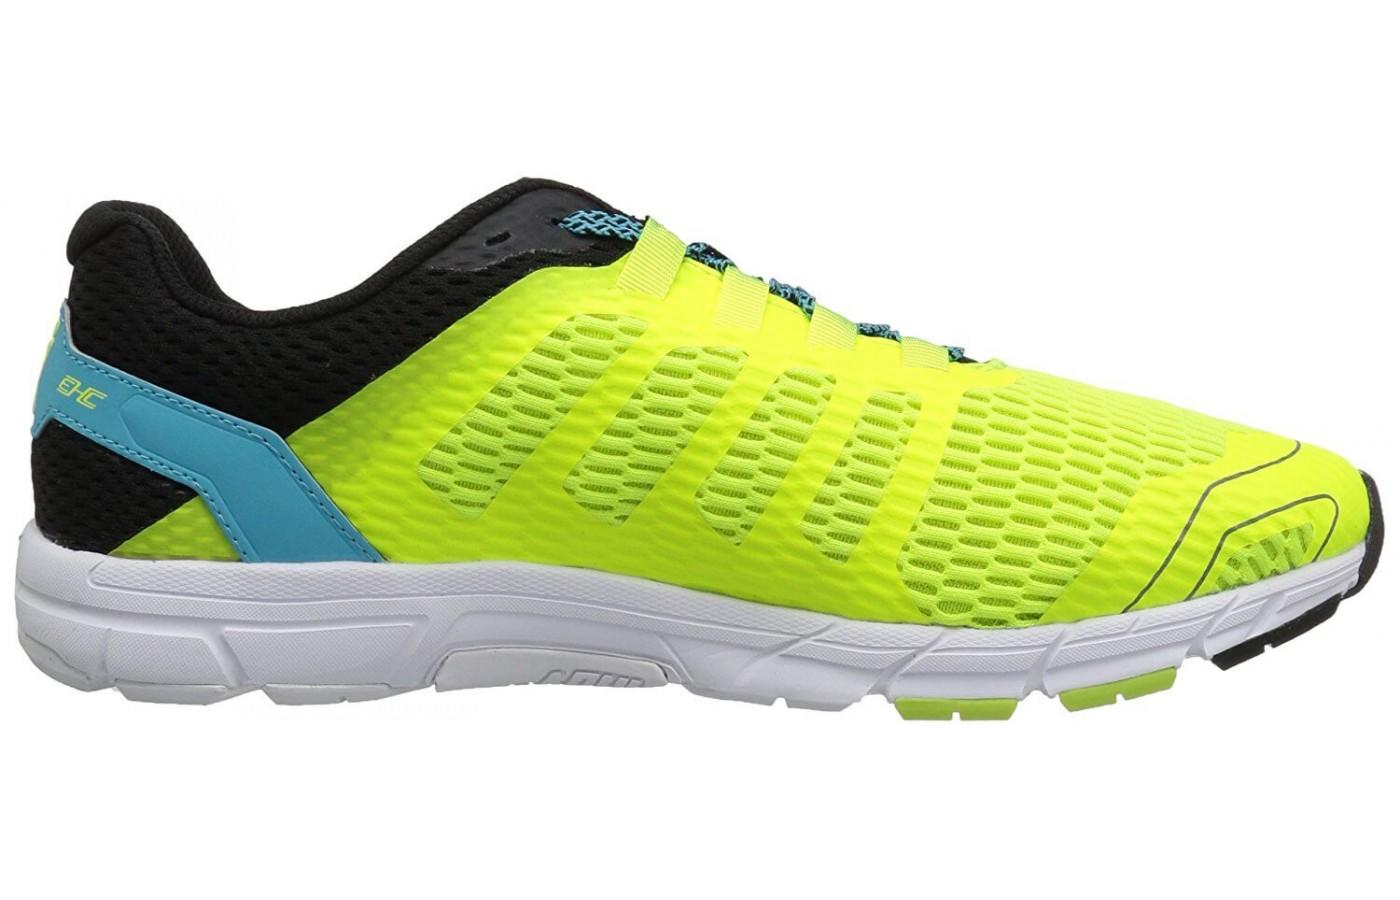 The Adapterweb Met-Cradle offers runners a snug fit through the midfoot of the Inov-8 Roadtalon 240.